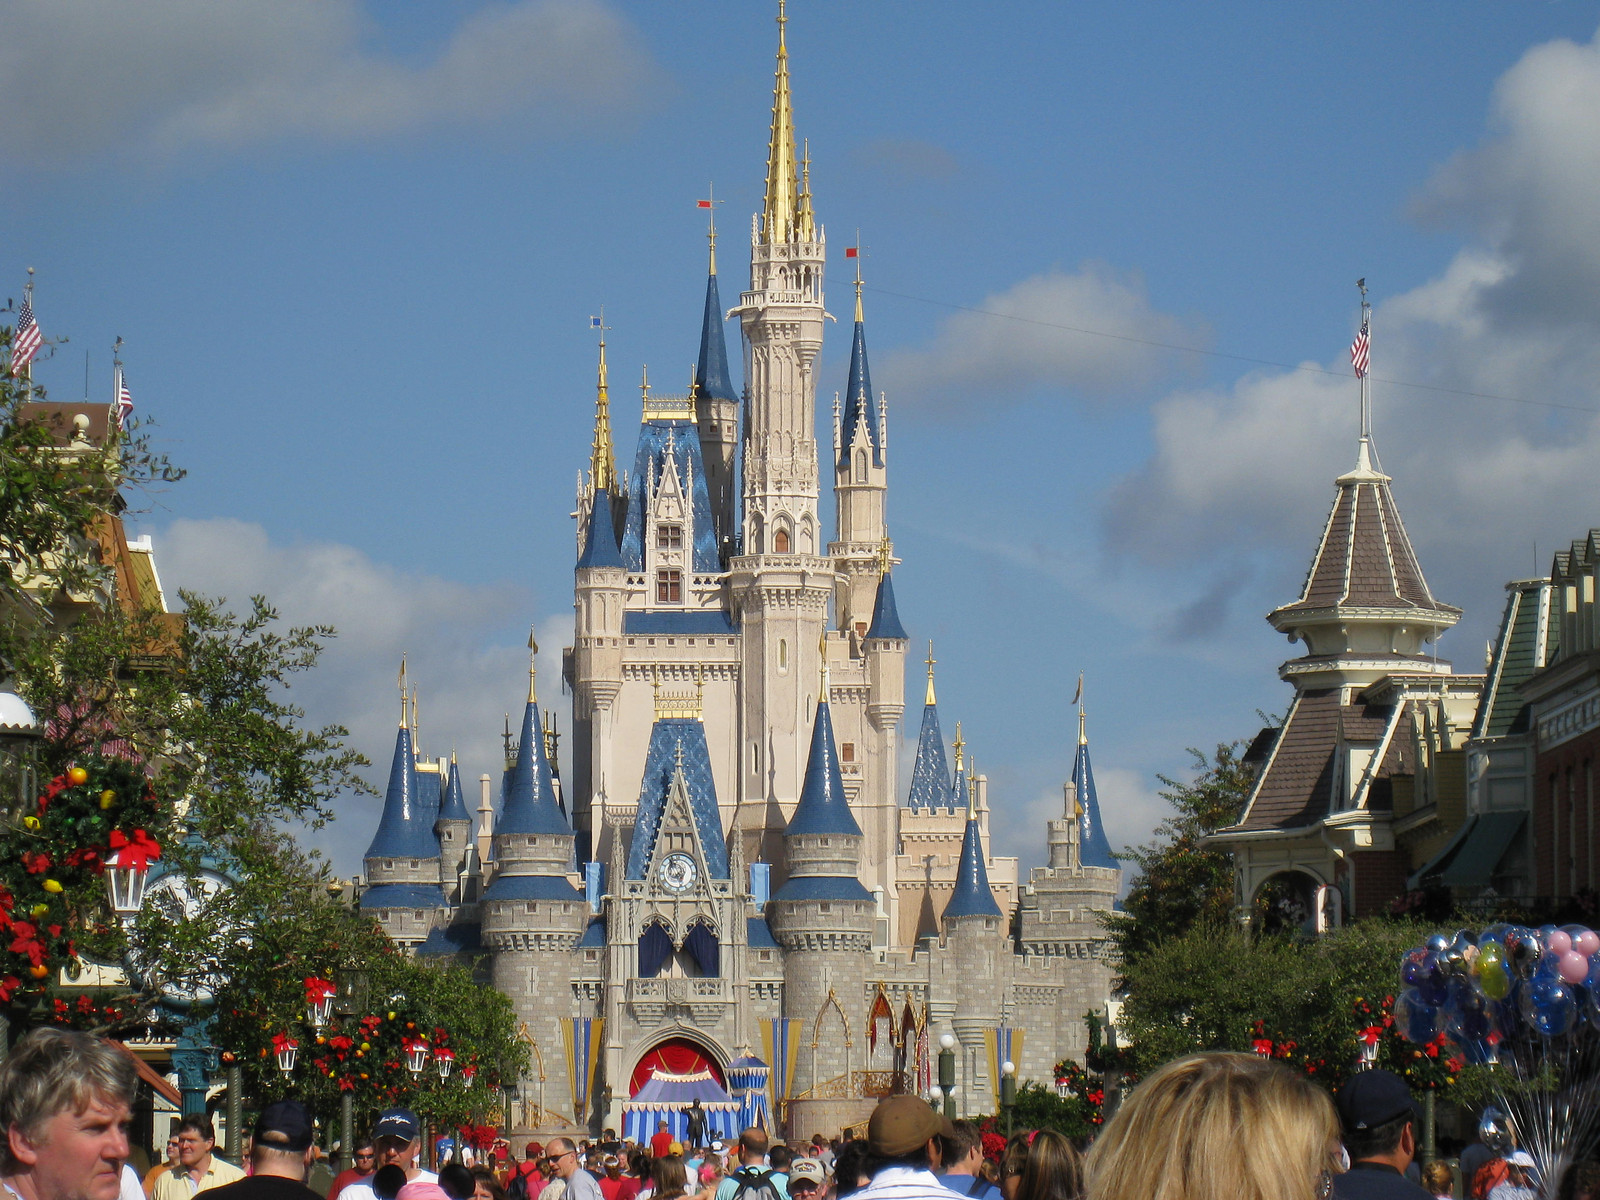 Walt Disney World Castle Wallpaper CityMochacom 1600x1200